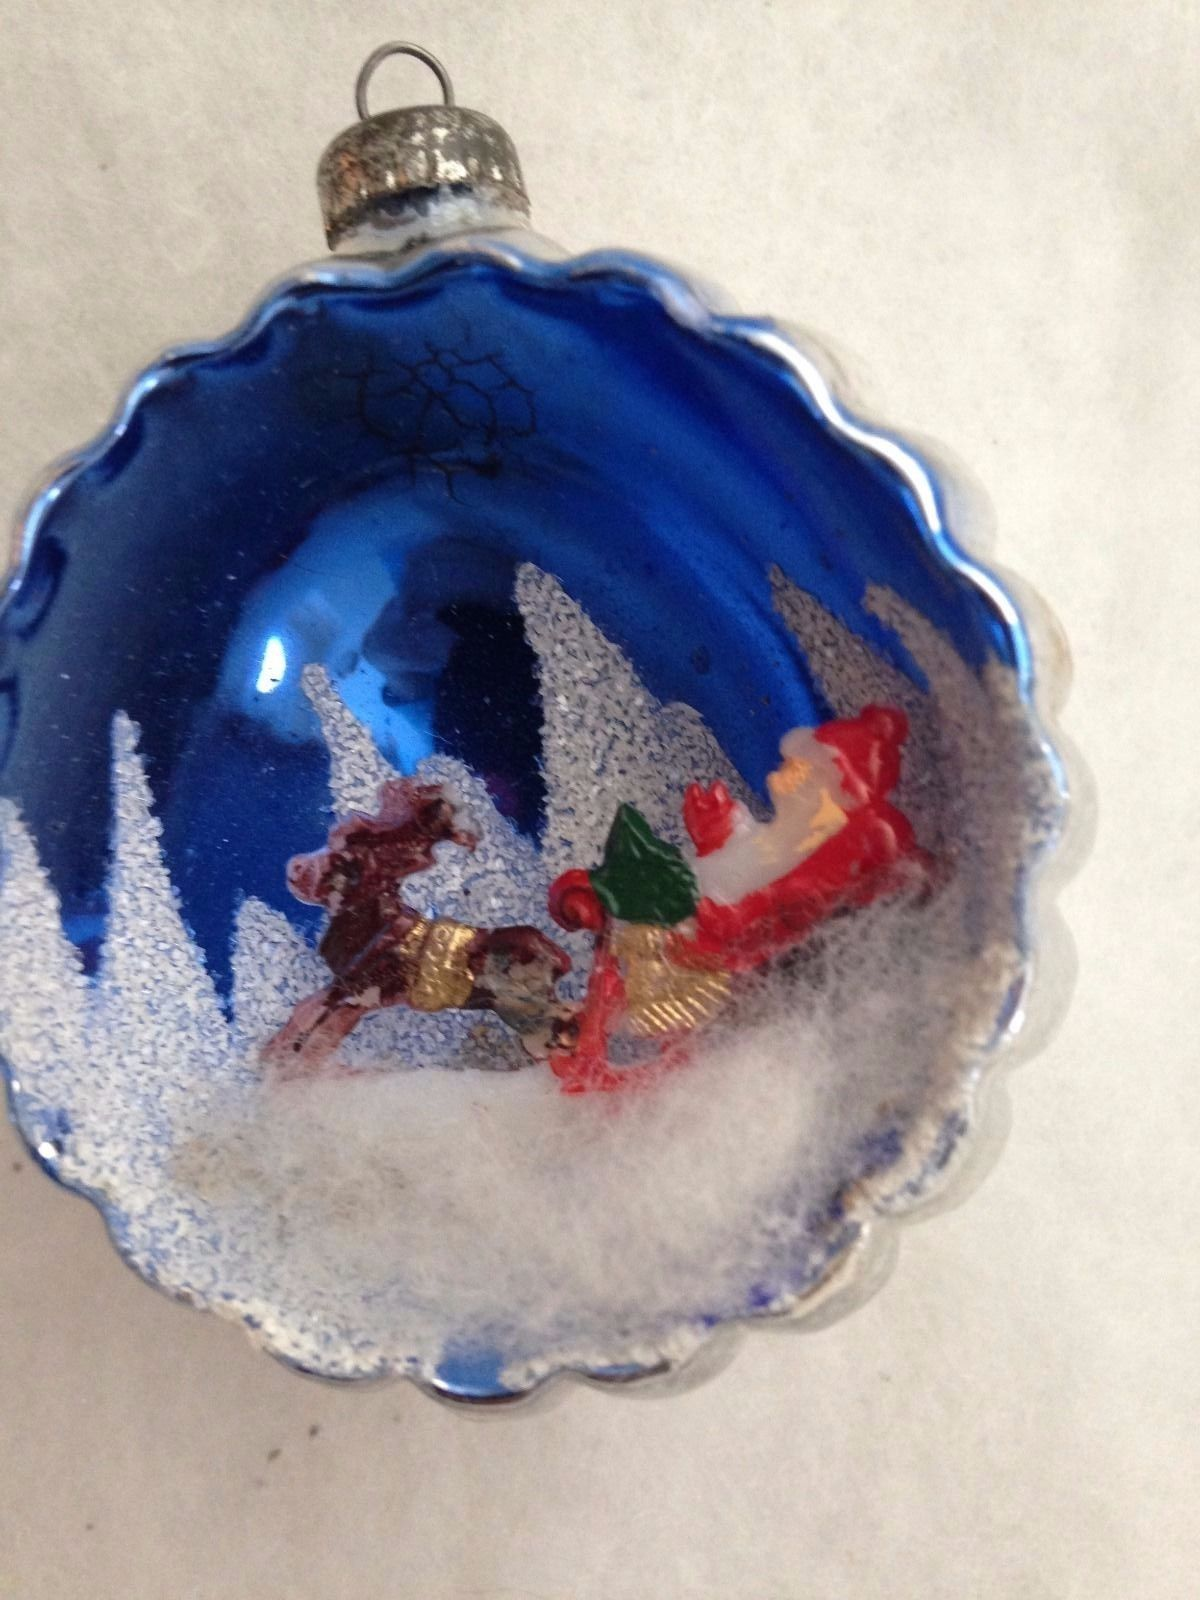 italy mercury glass indent diorama santa in sled with reindeer north pole sky ebay